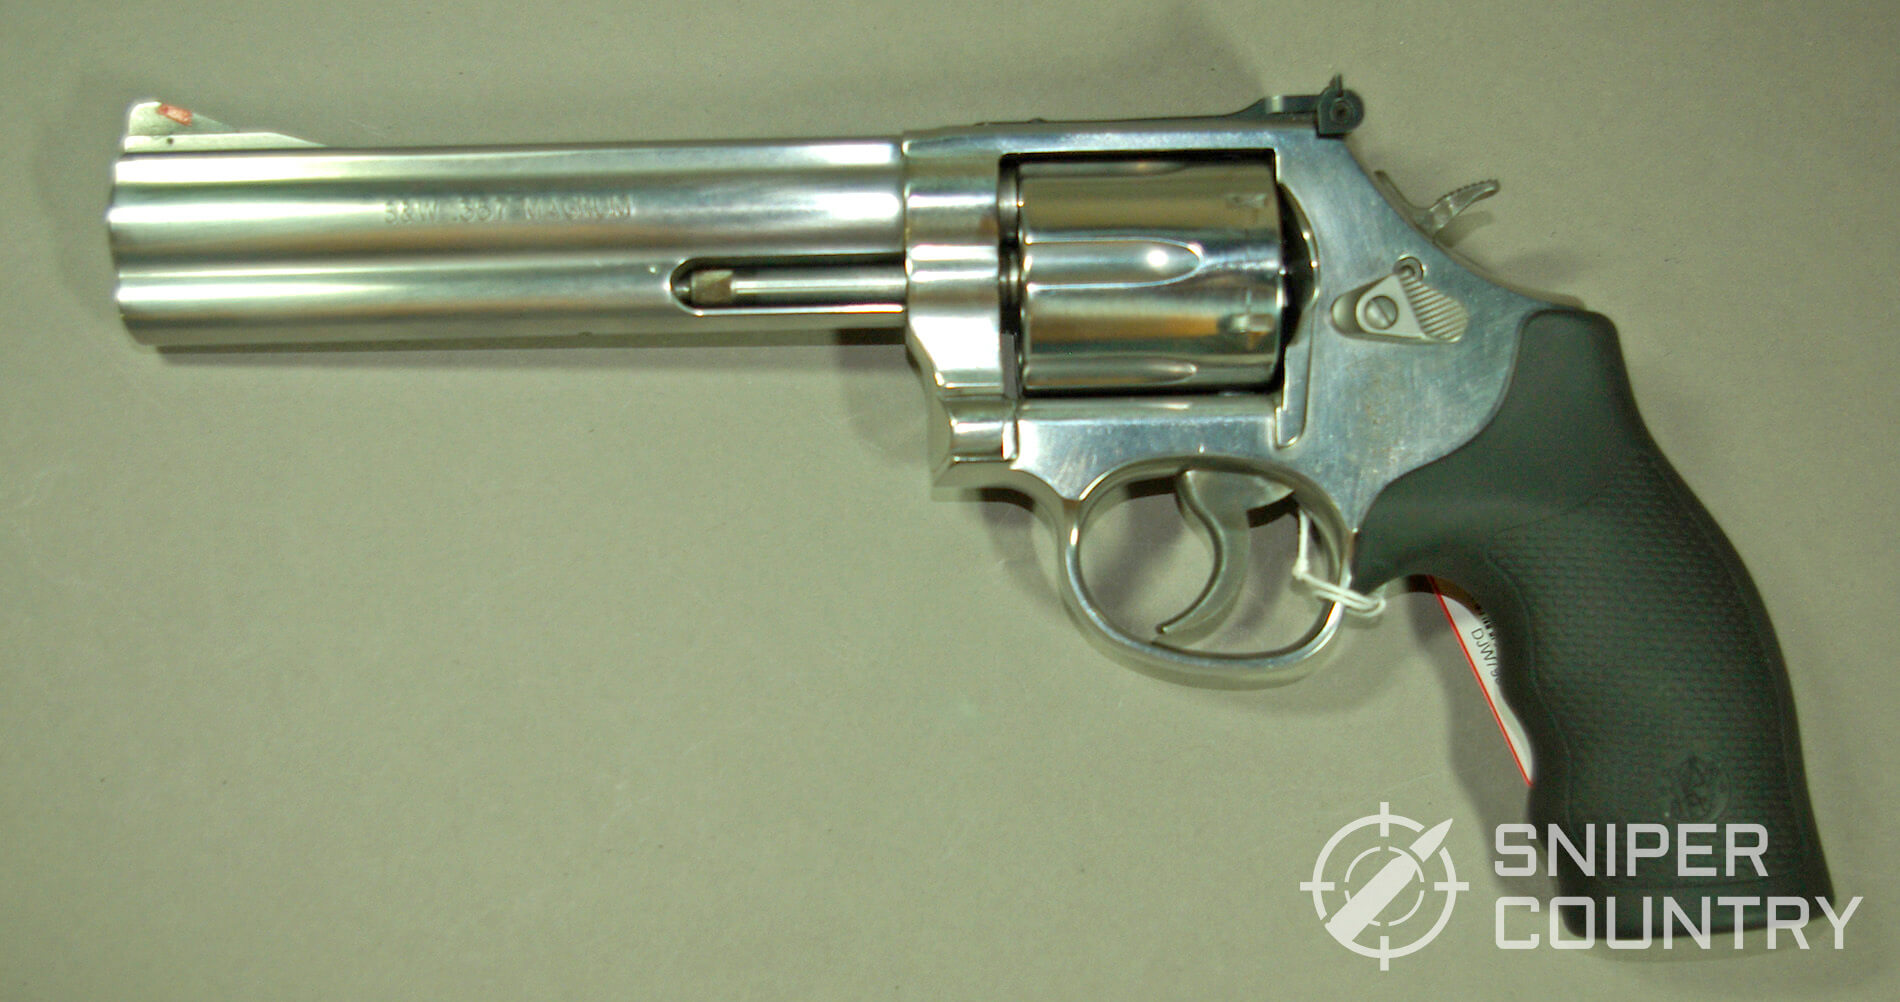 Smith & Wesson Model 686 6inch